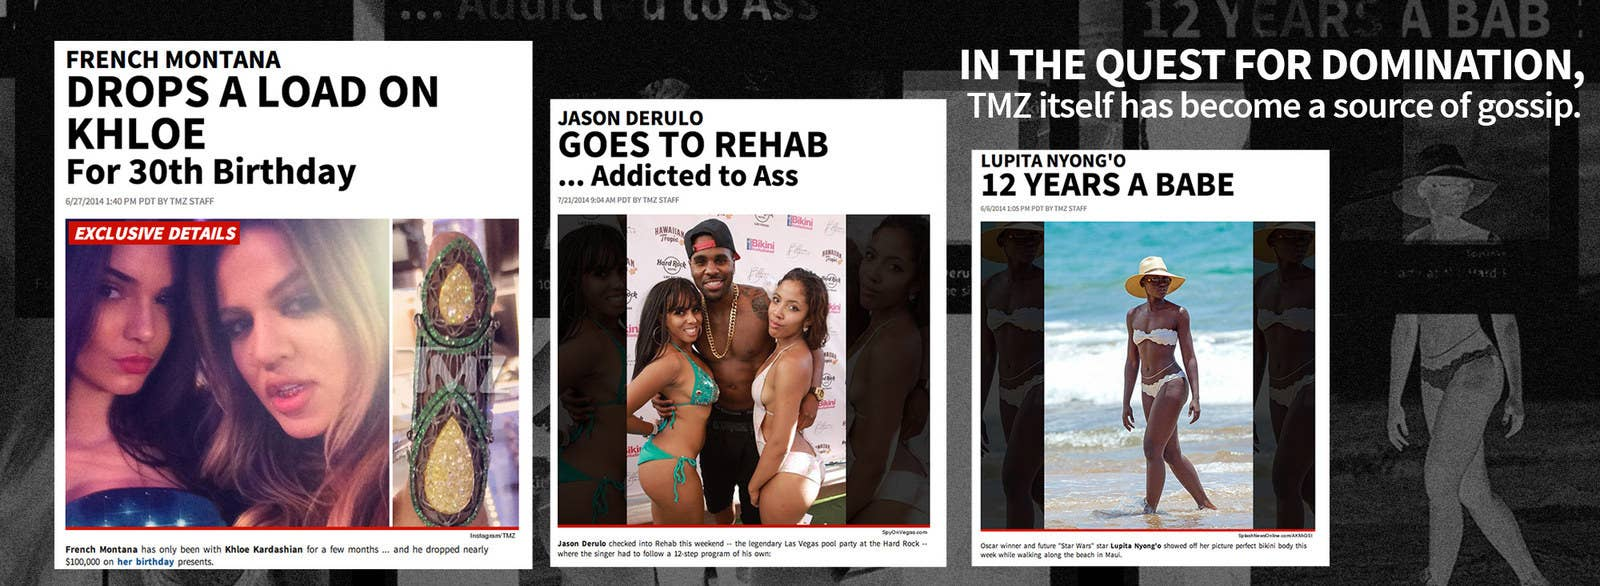 How can you view cast bios on TMZ?